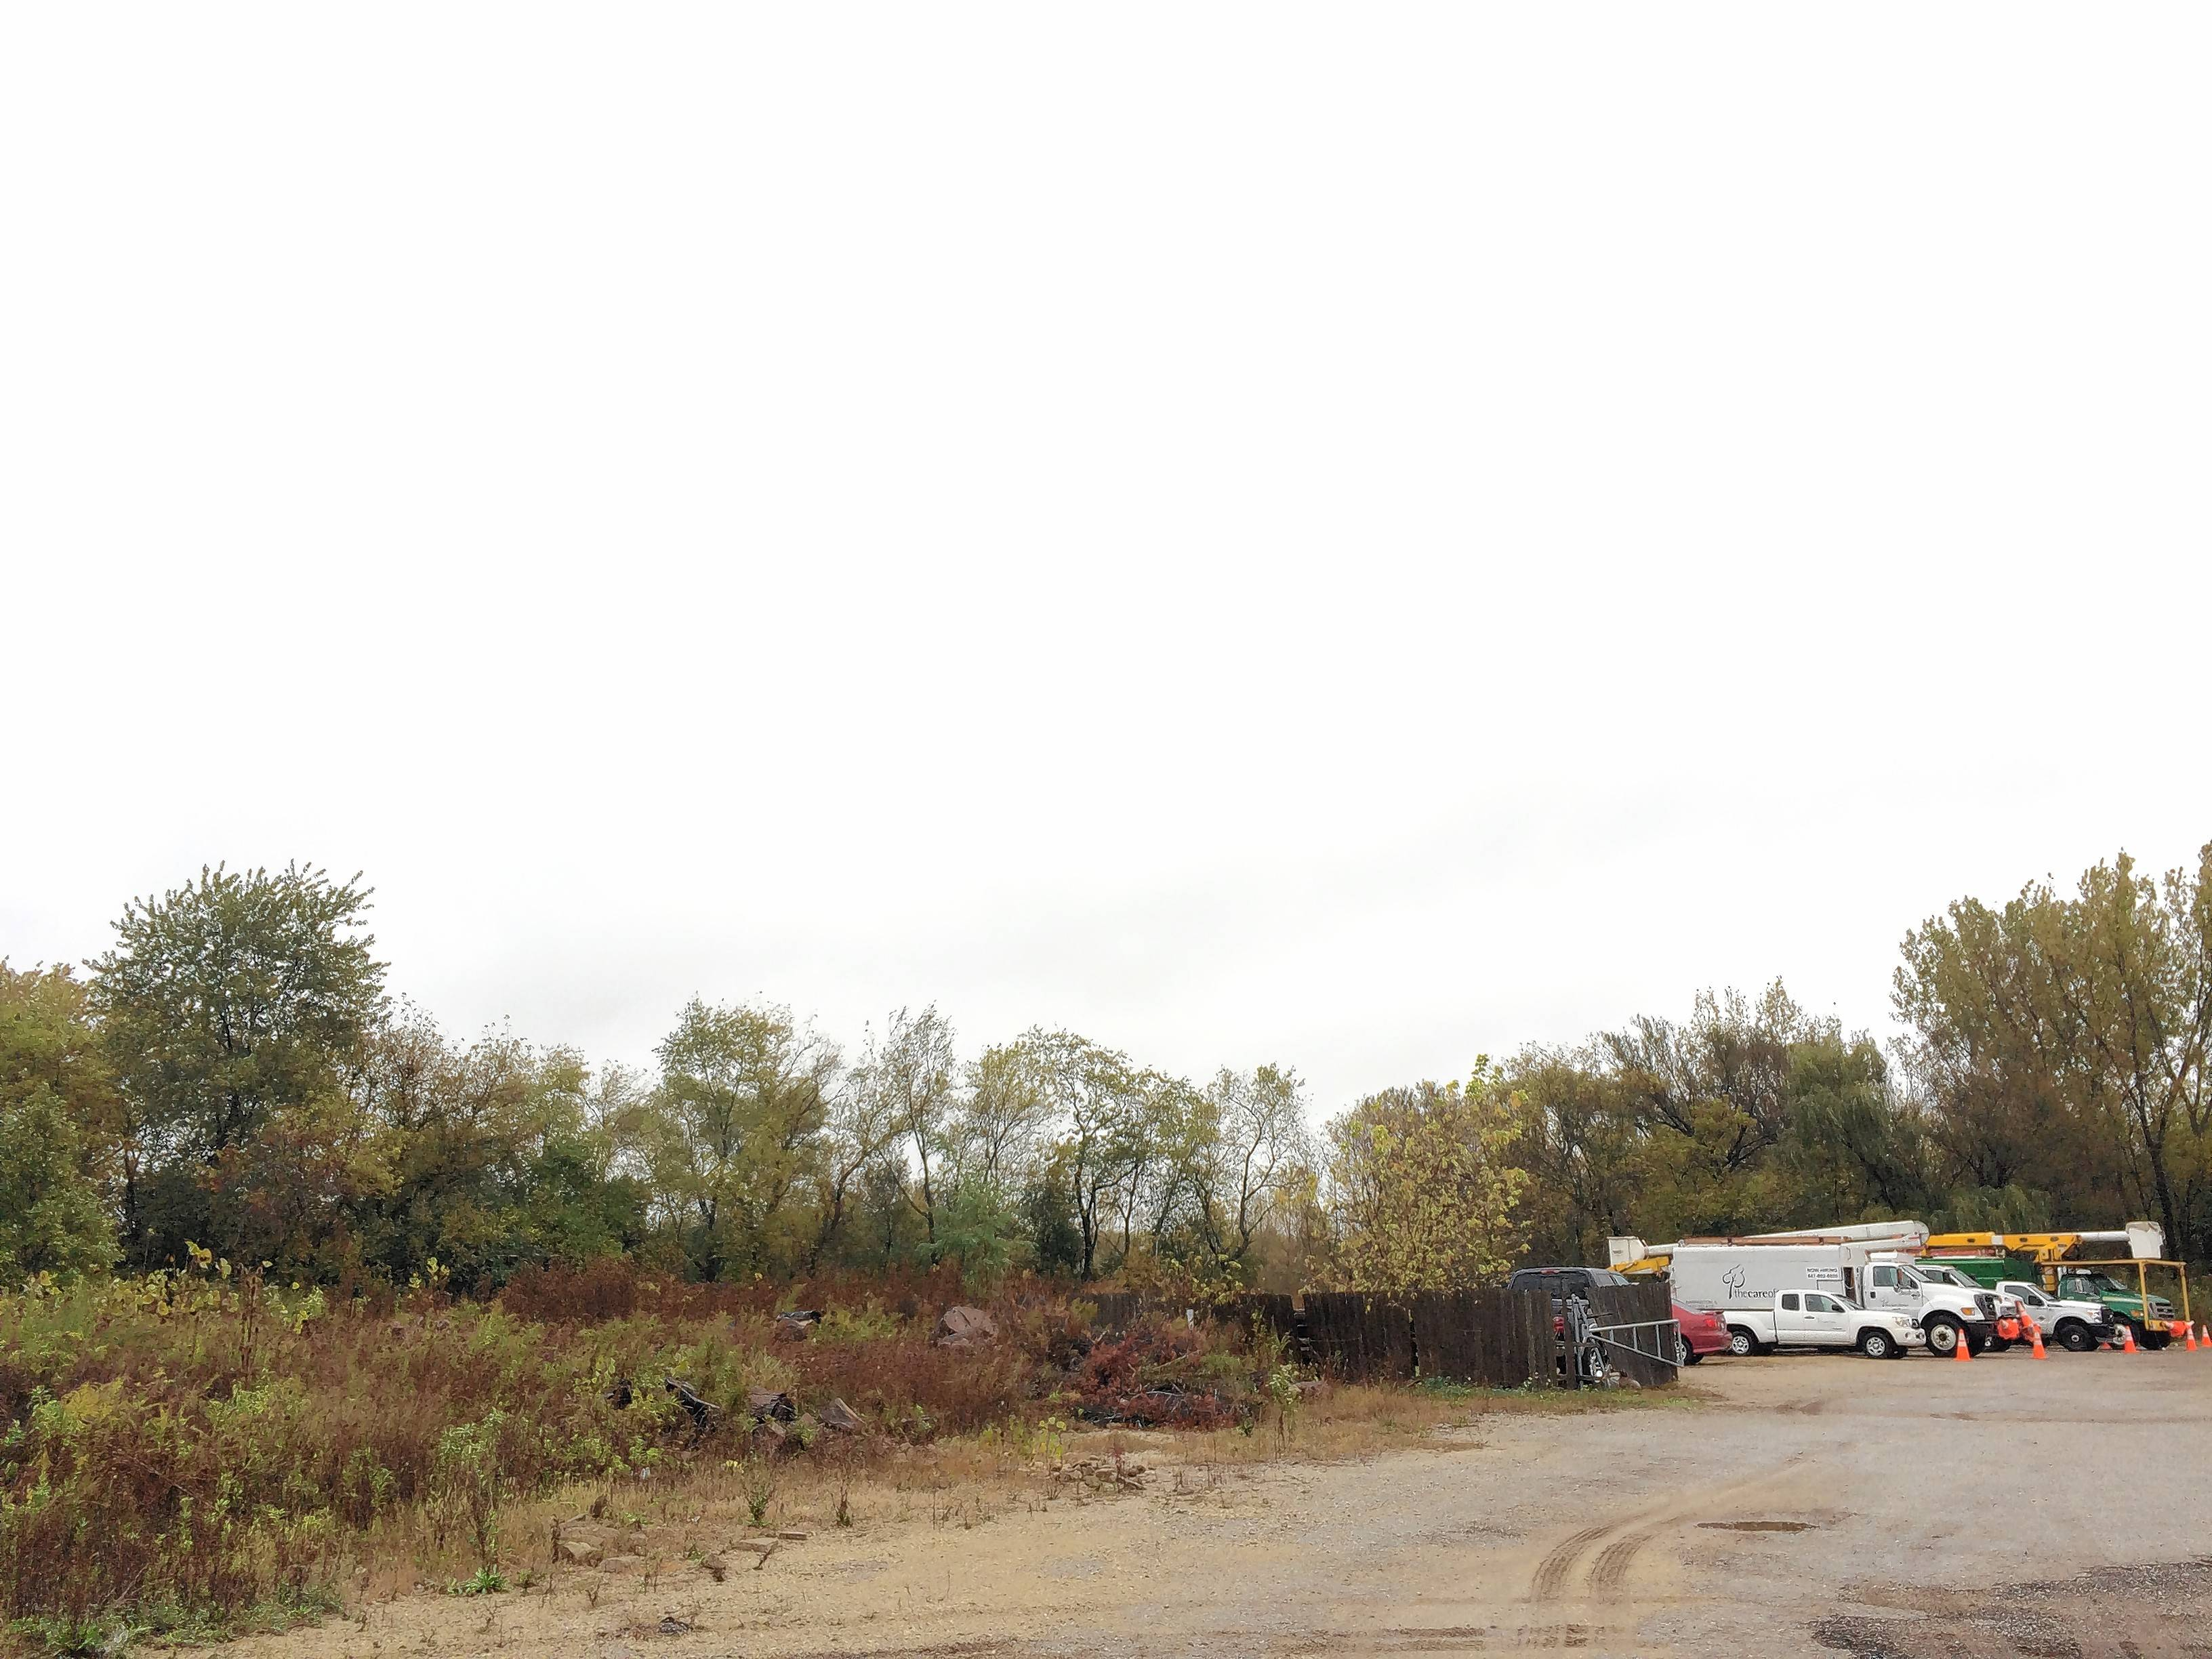 Fidelity Wes Builders Inc. of Long Grove plans to construct 34 houses east of the former Geimer Greenhouse property in the village.